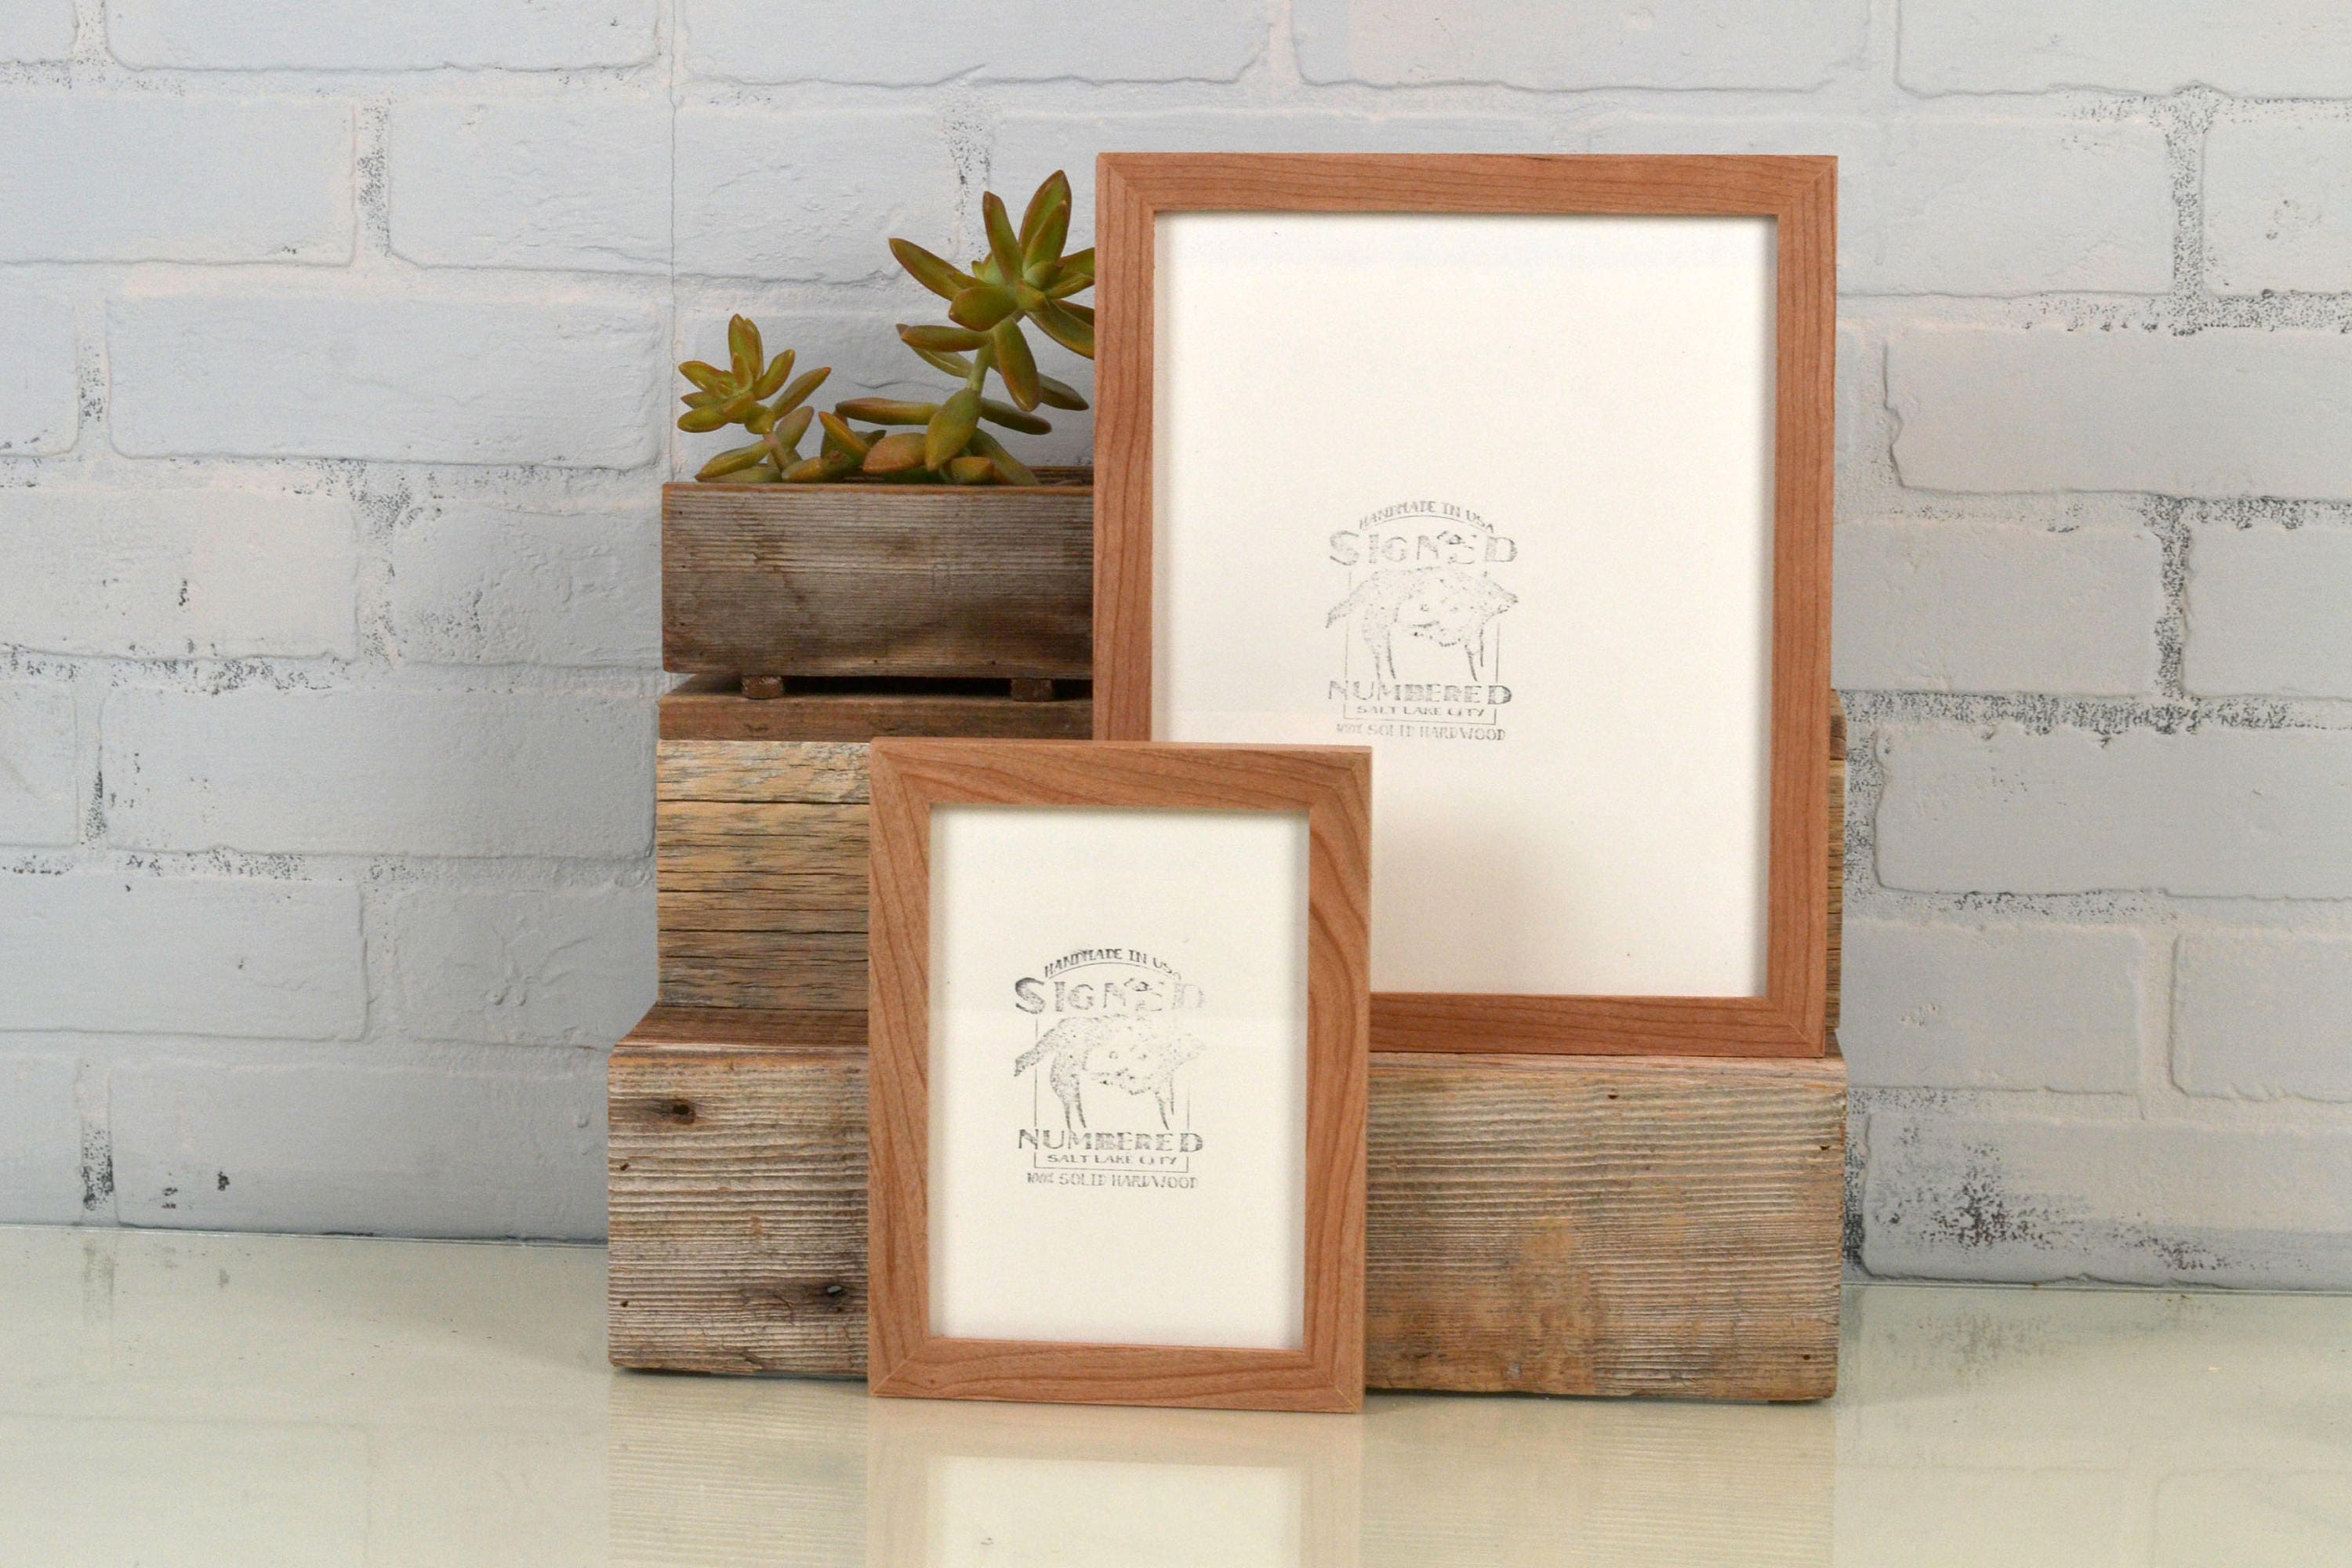 Basic picture frame natural cherry solid hardwood gallery wall basic picture frame natural cherry solid hardwood gallery wall frames choose medium size 8x8 7x9 8x10 9x9 8x12 85x11 a4 83x117 jeuxipadfo Gallery